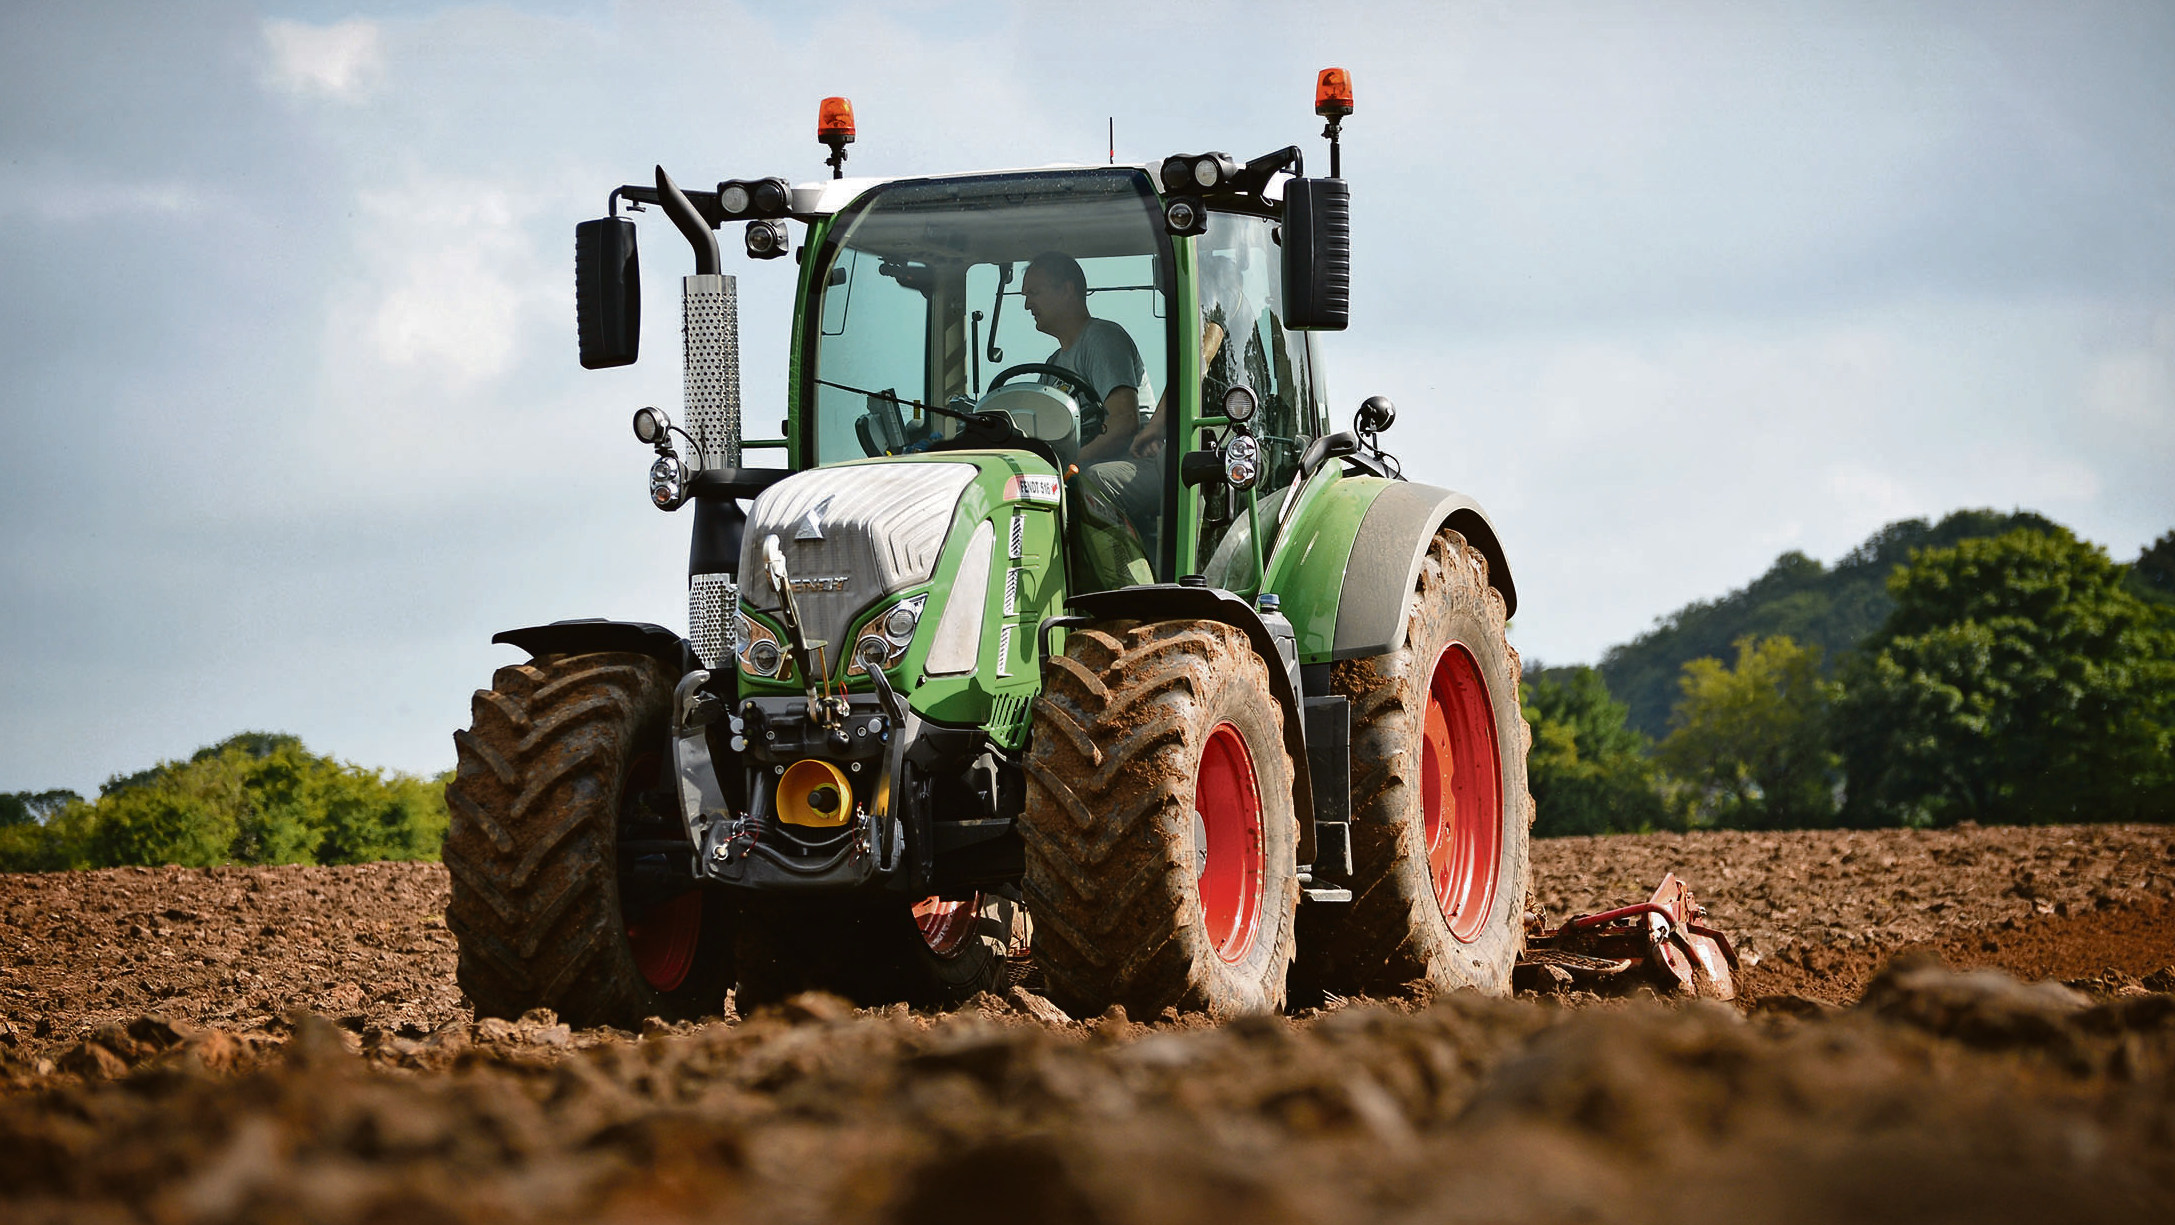 On test: Challenging conditions reveal Fendt's new 516's capabilities